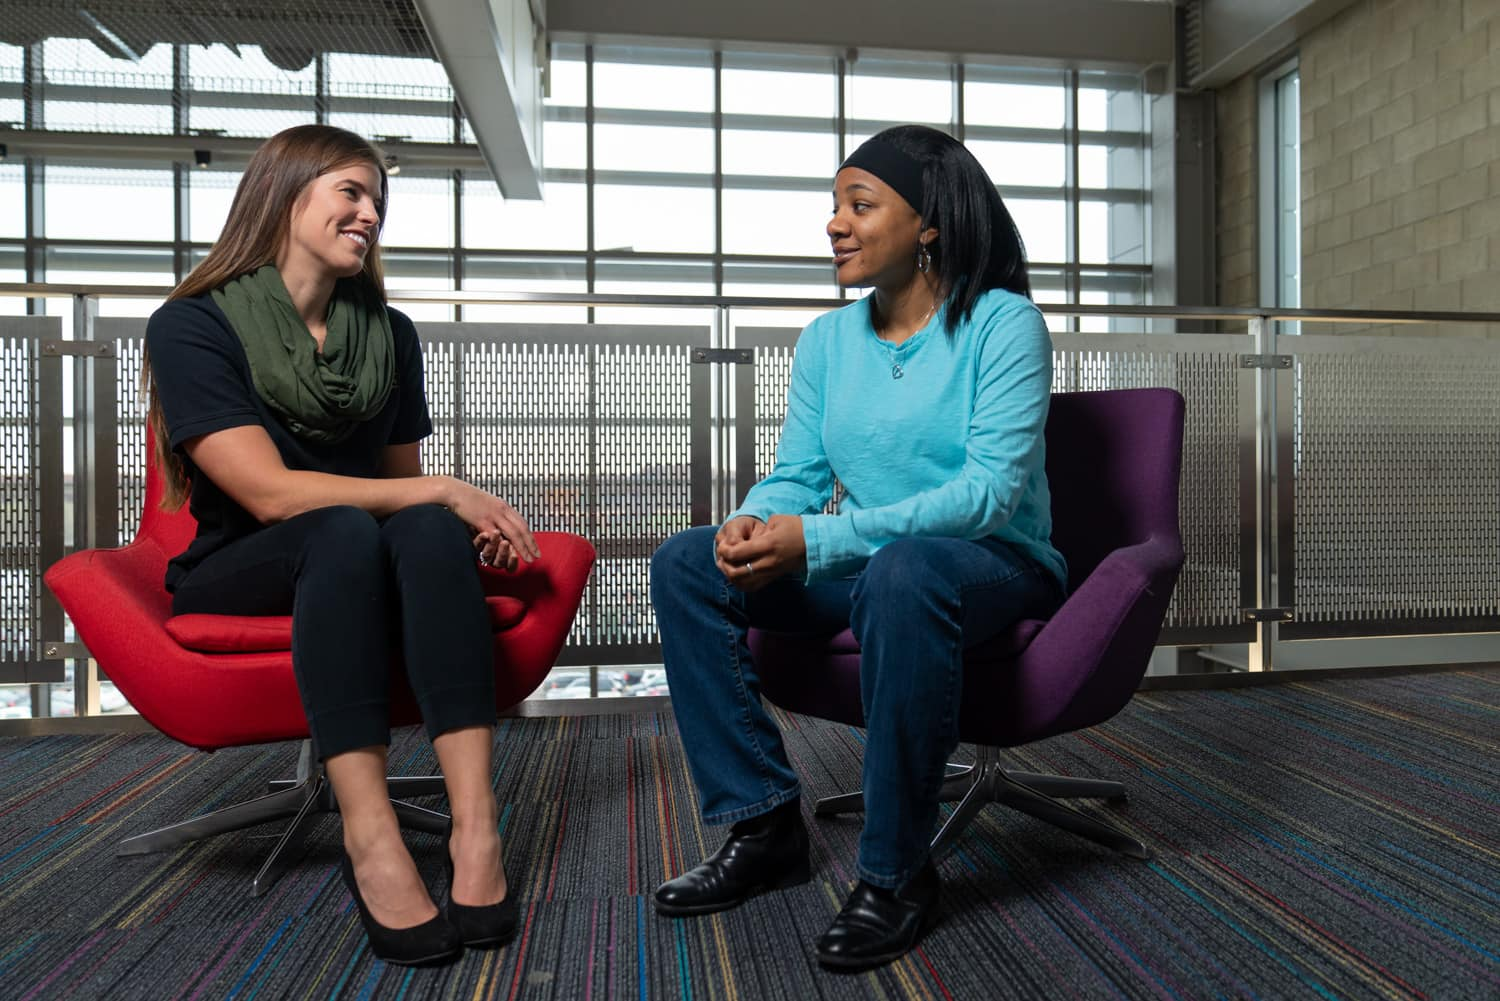 student and advisor talking in chairs in front of windows